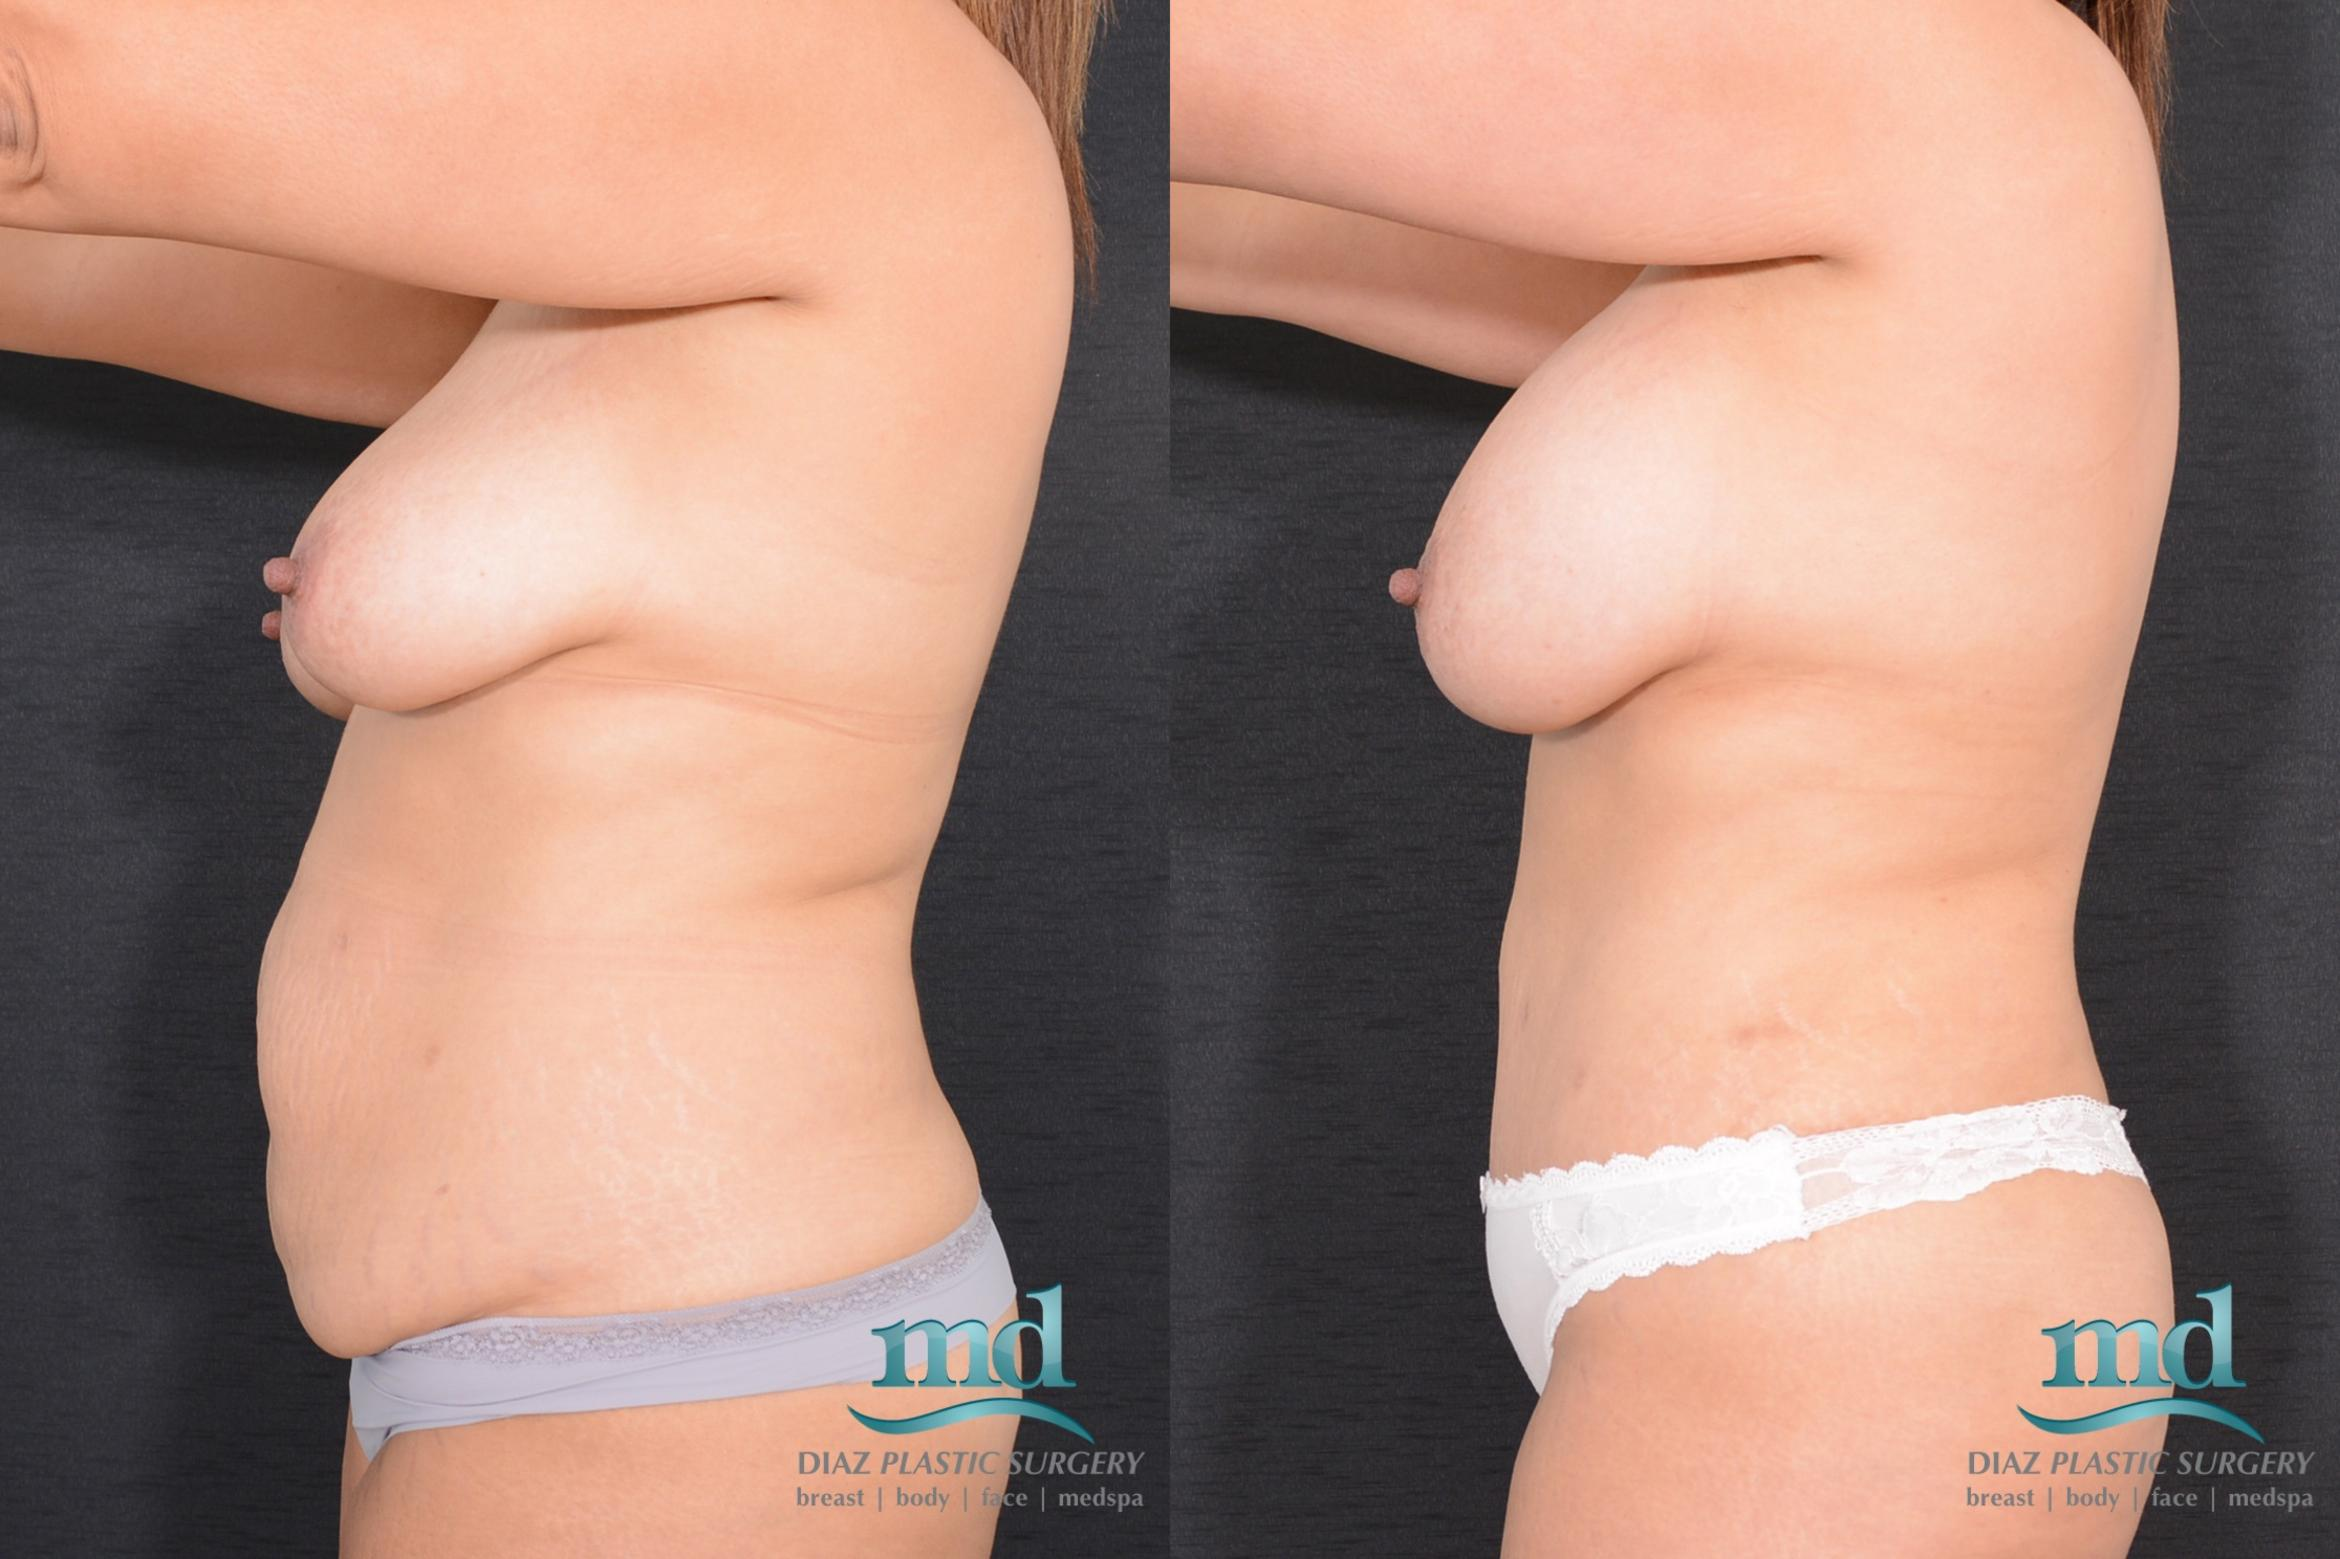 Surgery After Massive Weight Loss Case 16 Before & After View #8 | Melbourne, FL | Michael Diaz, M.D